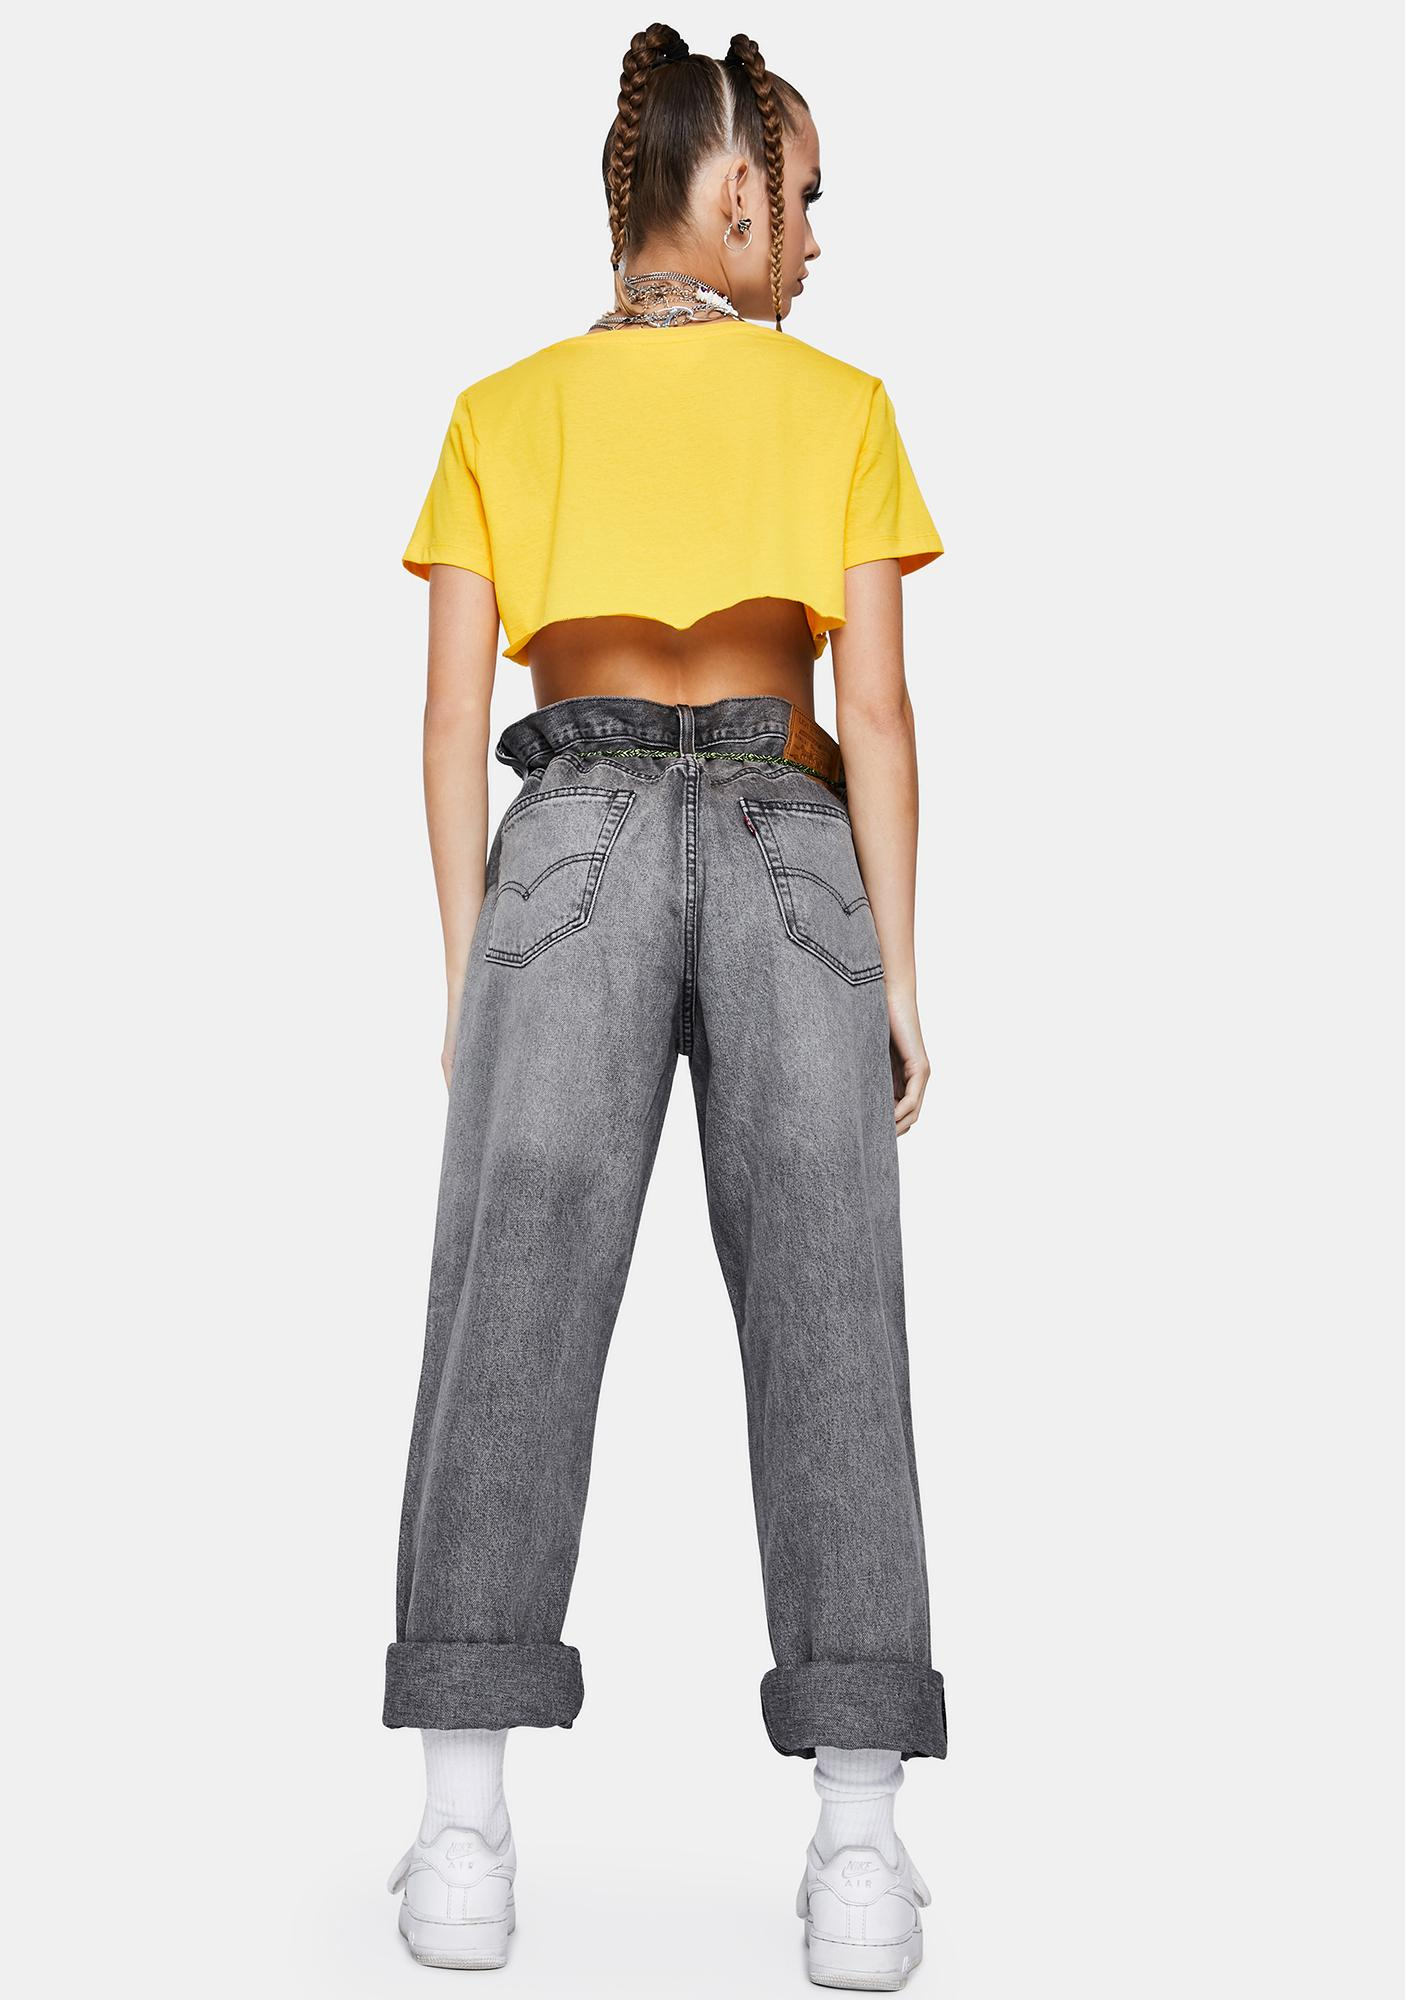 Levis Tannin Gd Stay Loose Denim Jeans